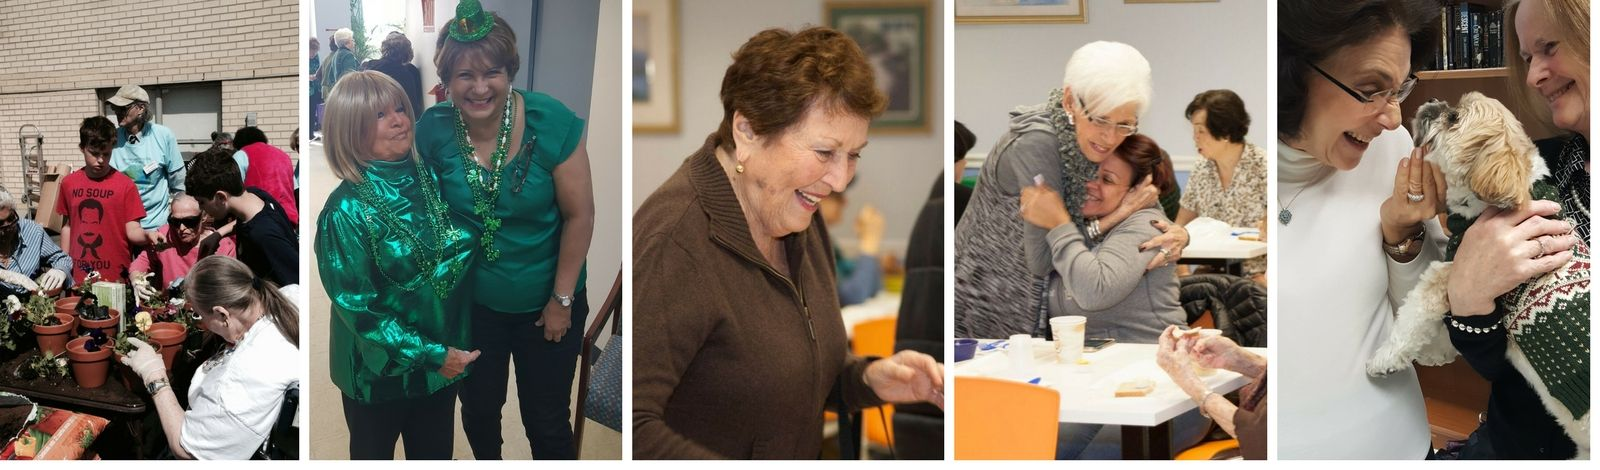 Games, Trips, Intergenerational Programs for Seniors at RSS